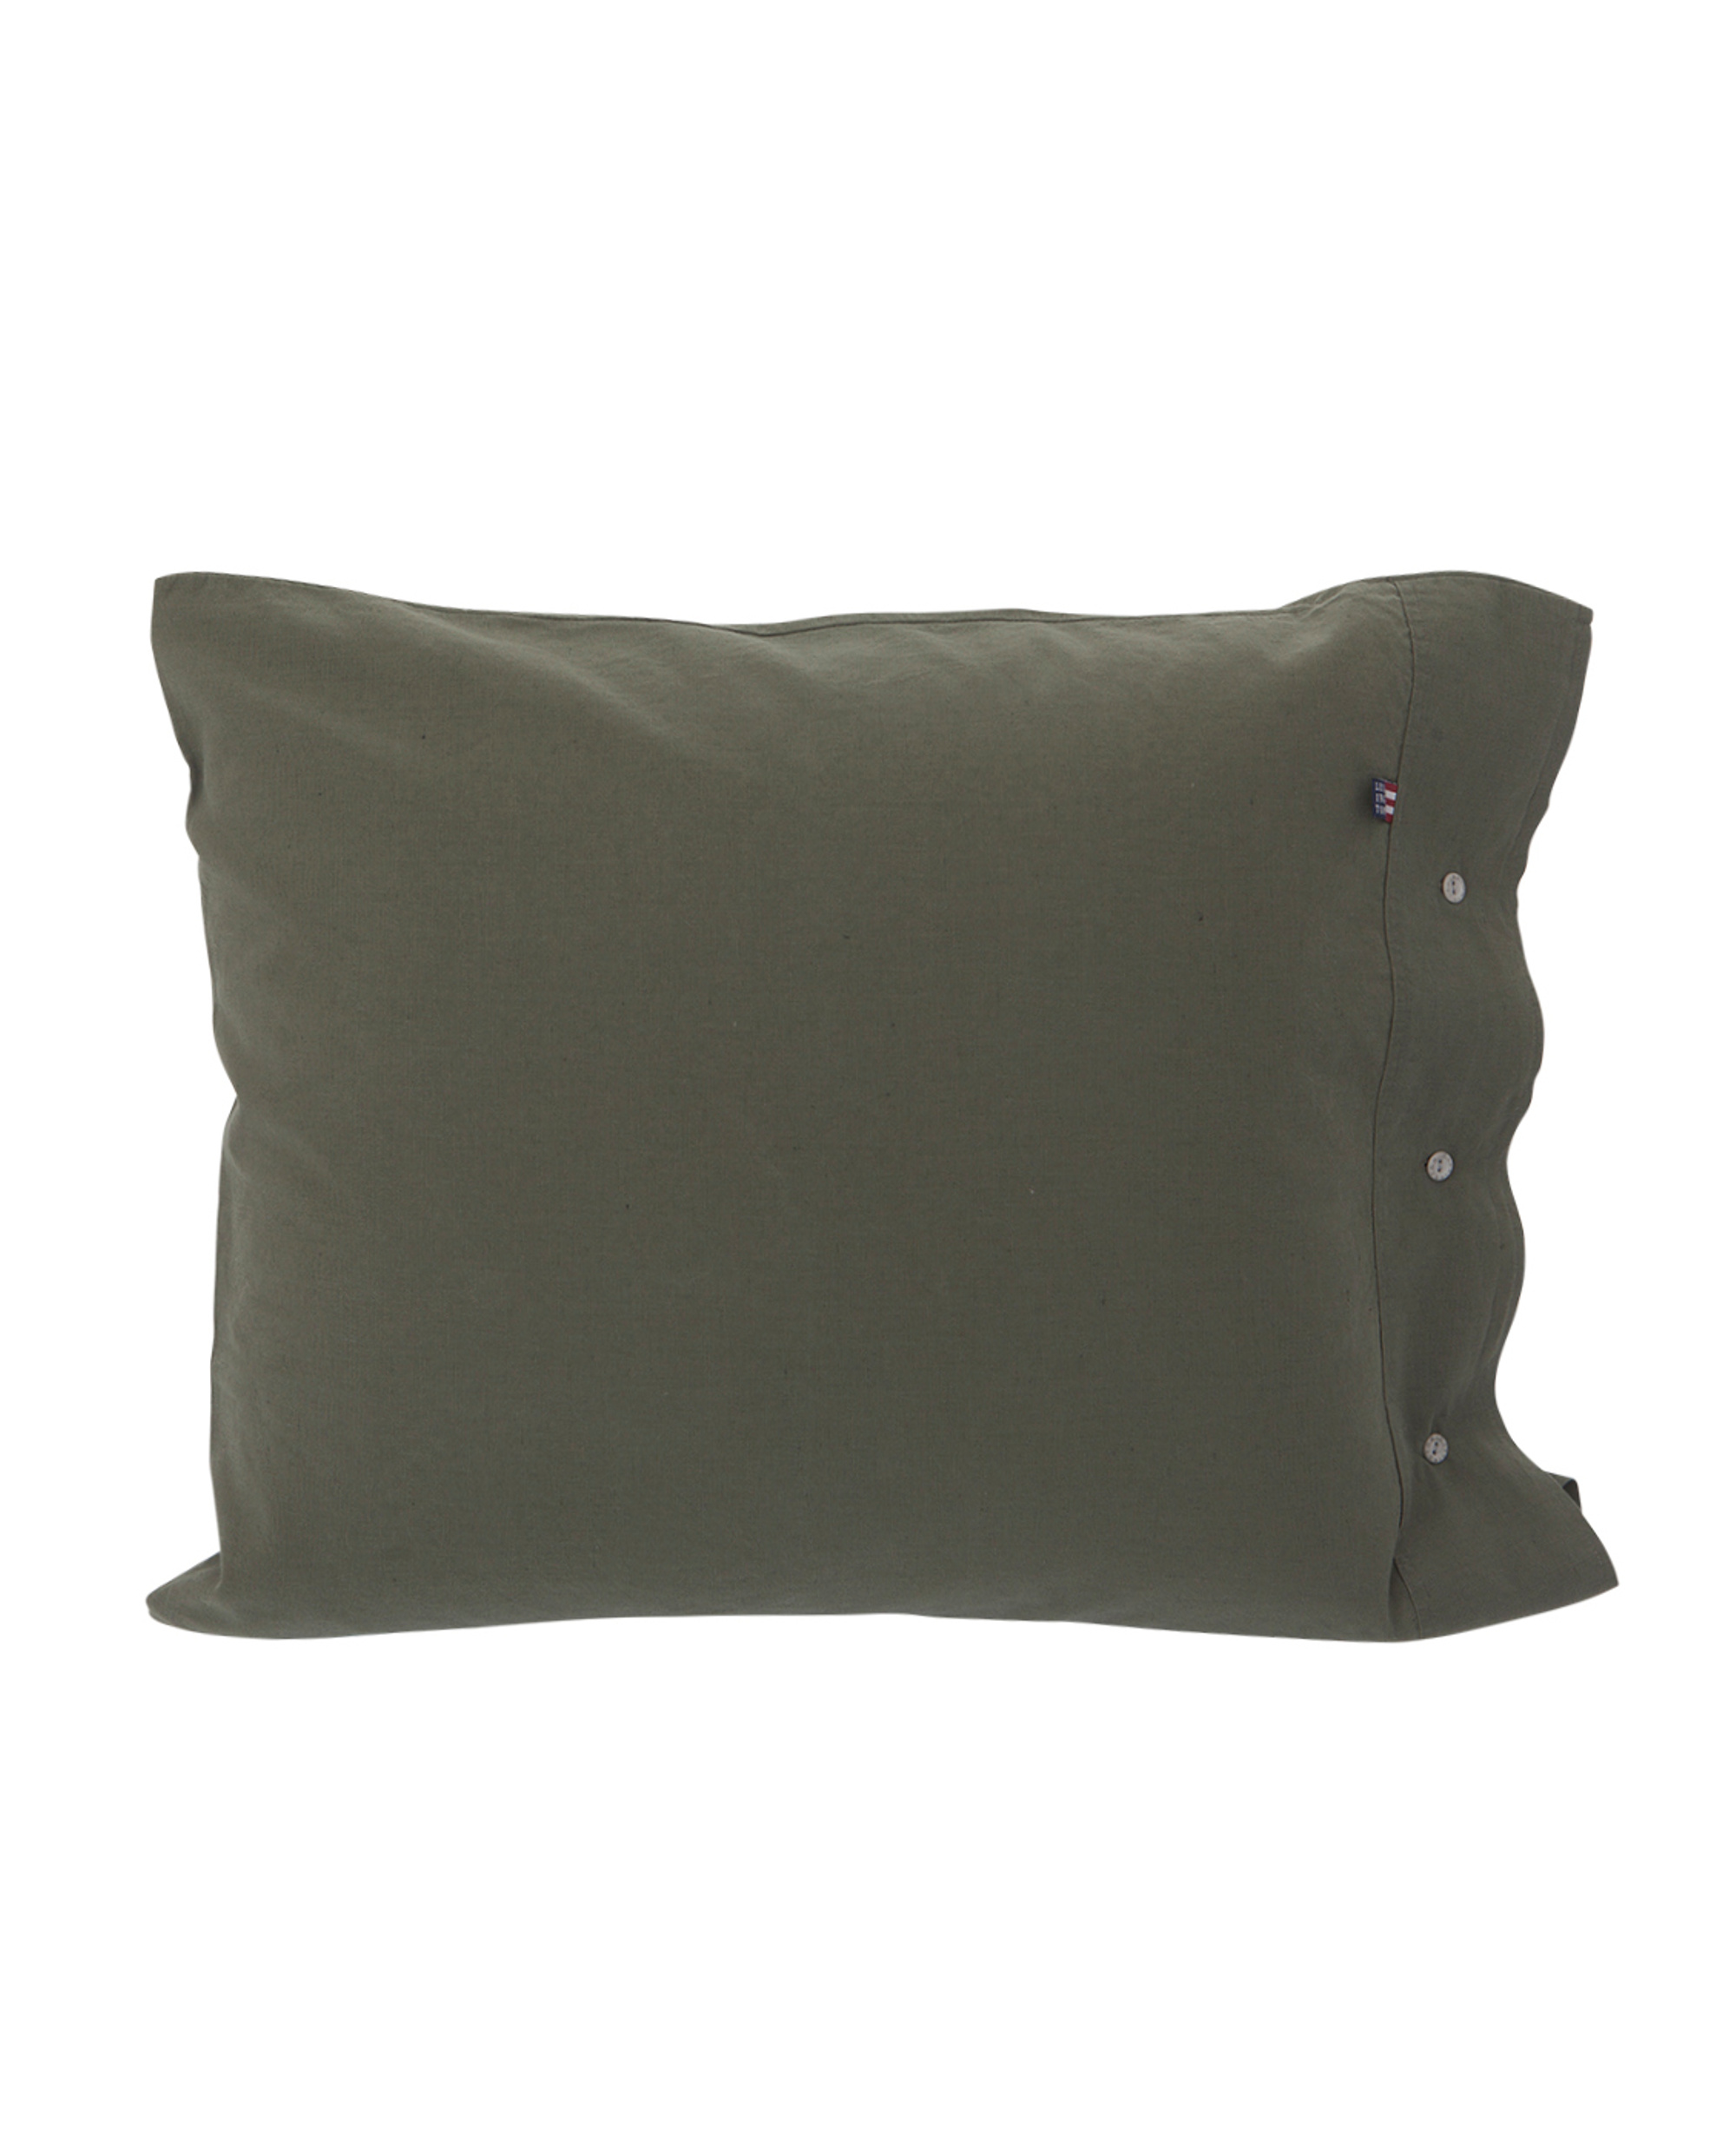 Washed Cotton Linen Pillowcase, Green